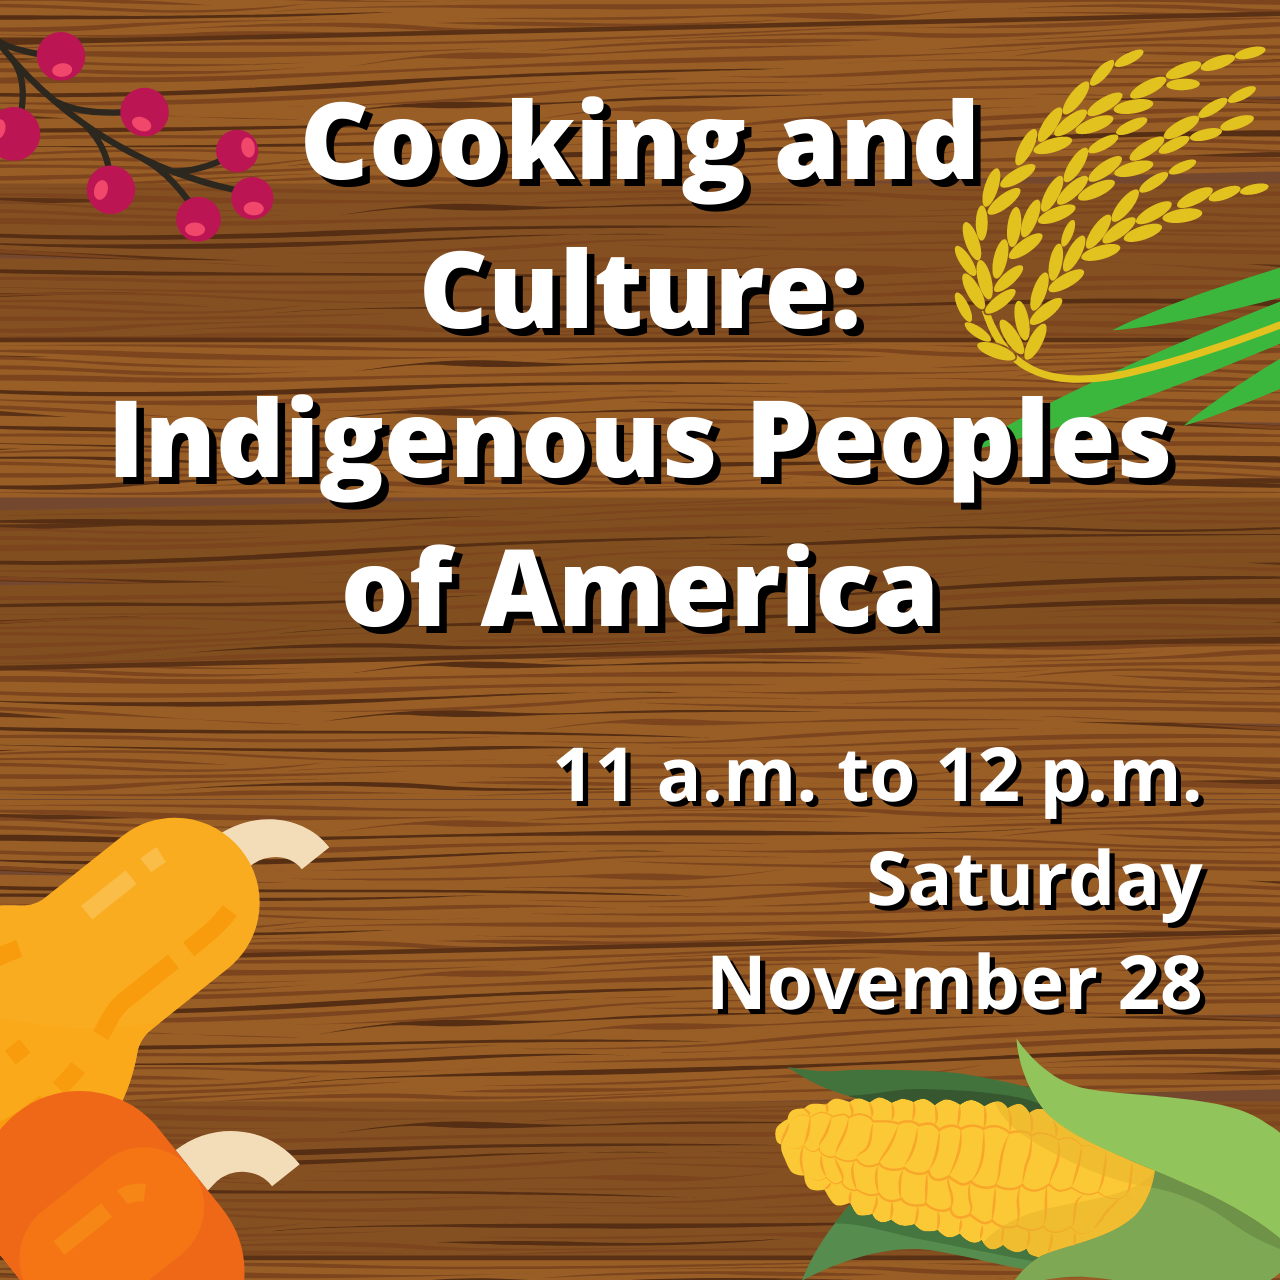 Cooking and Culture: Indigenous Peoples of America